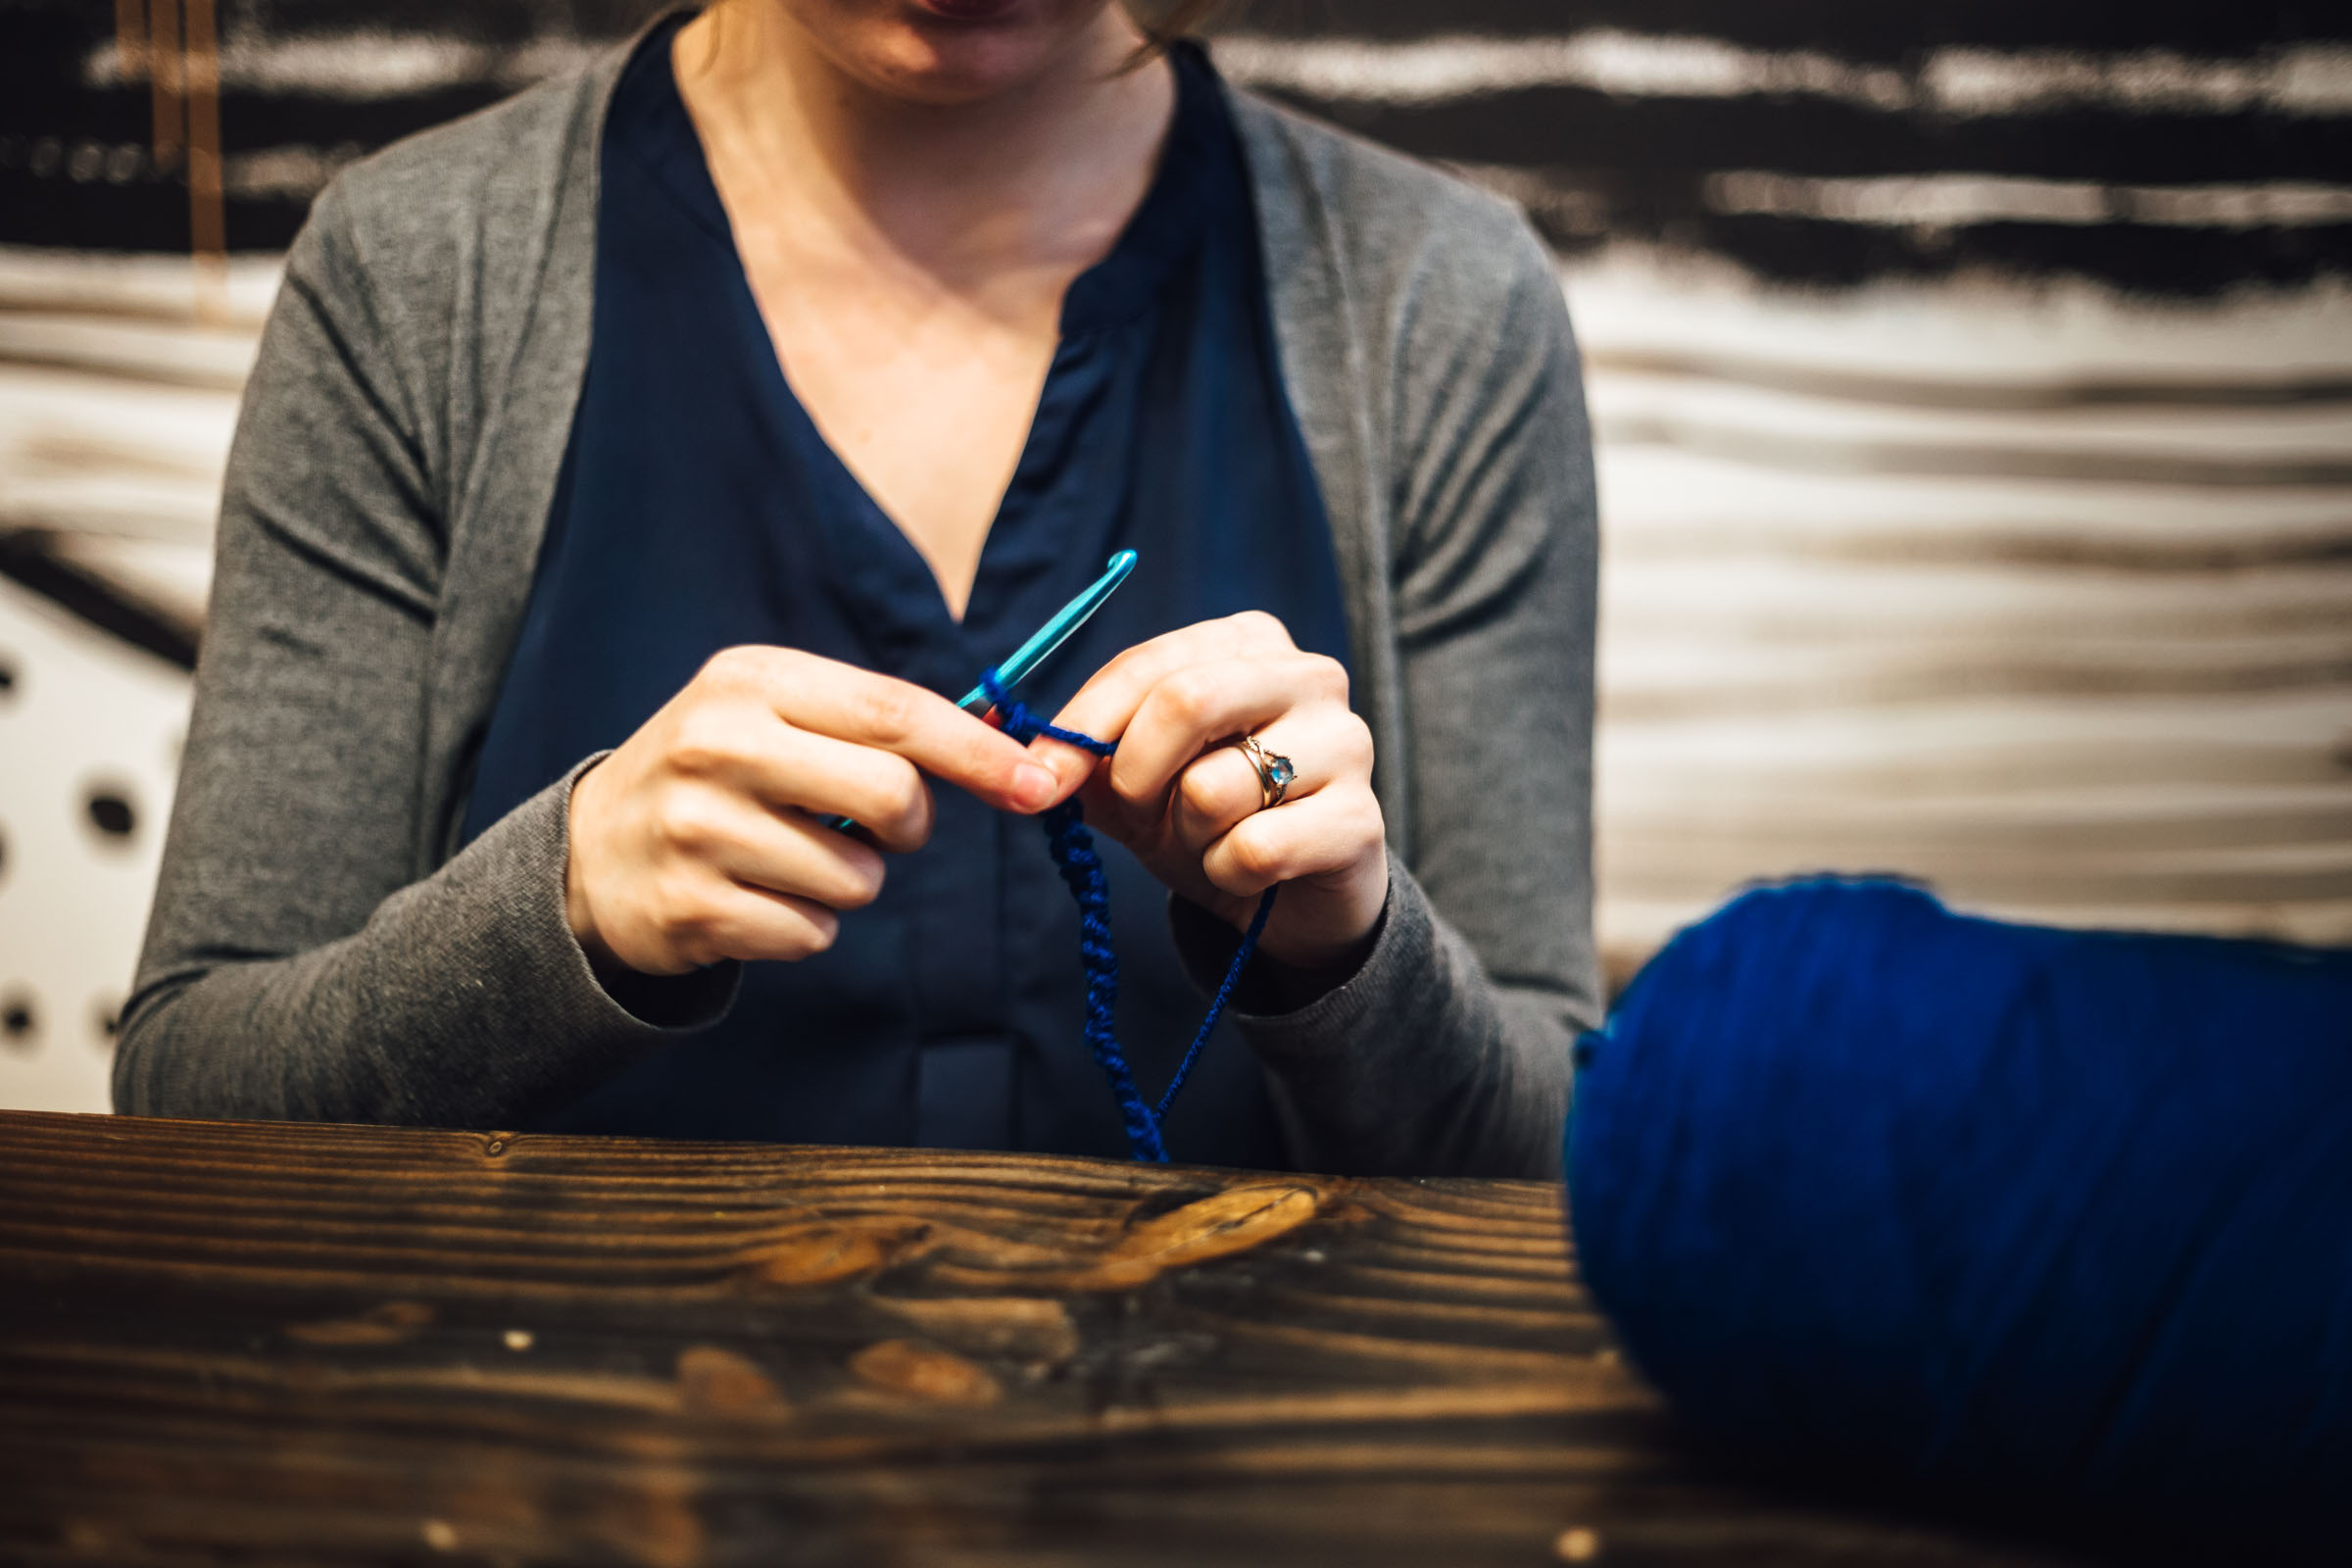 LightGalleryGR_Crochet_Workshop_Hanna_GrandRapidsWorkshop-4.jpg